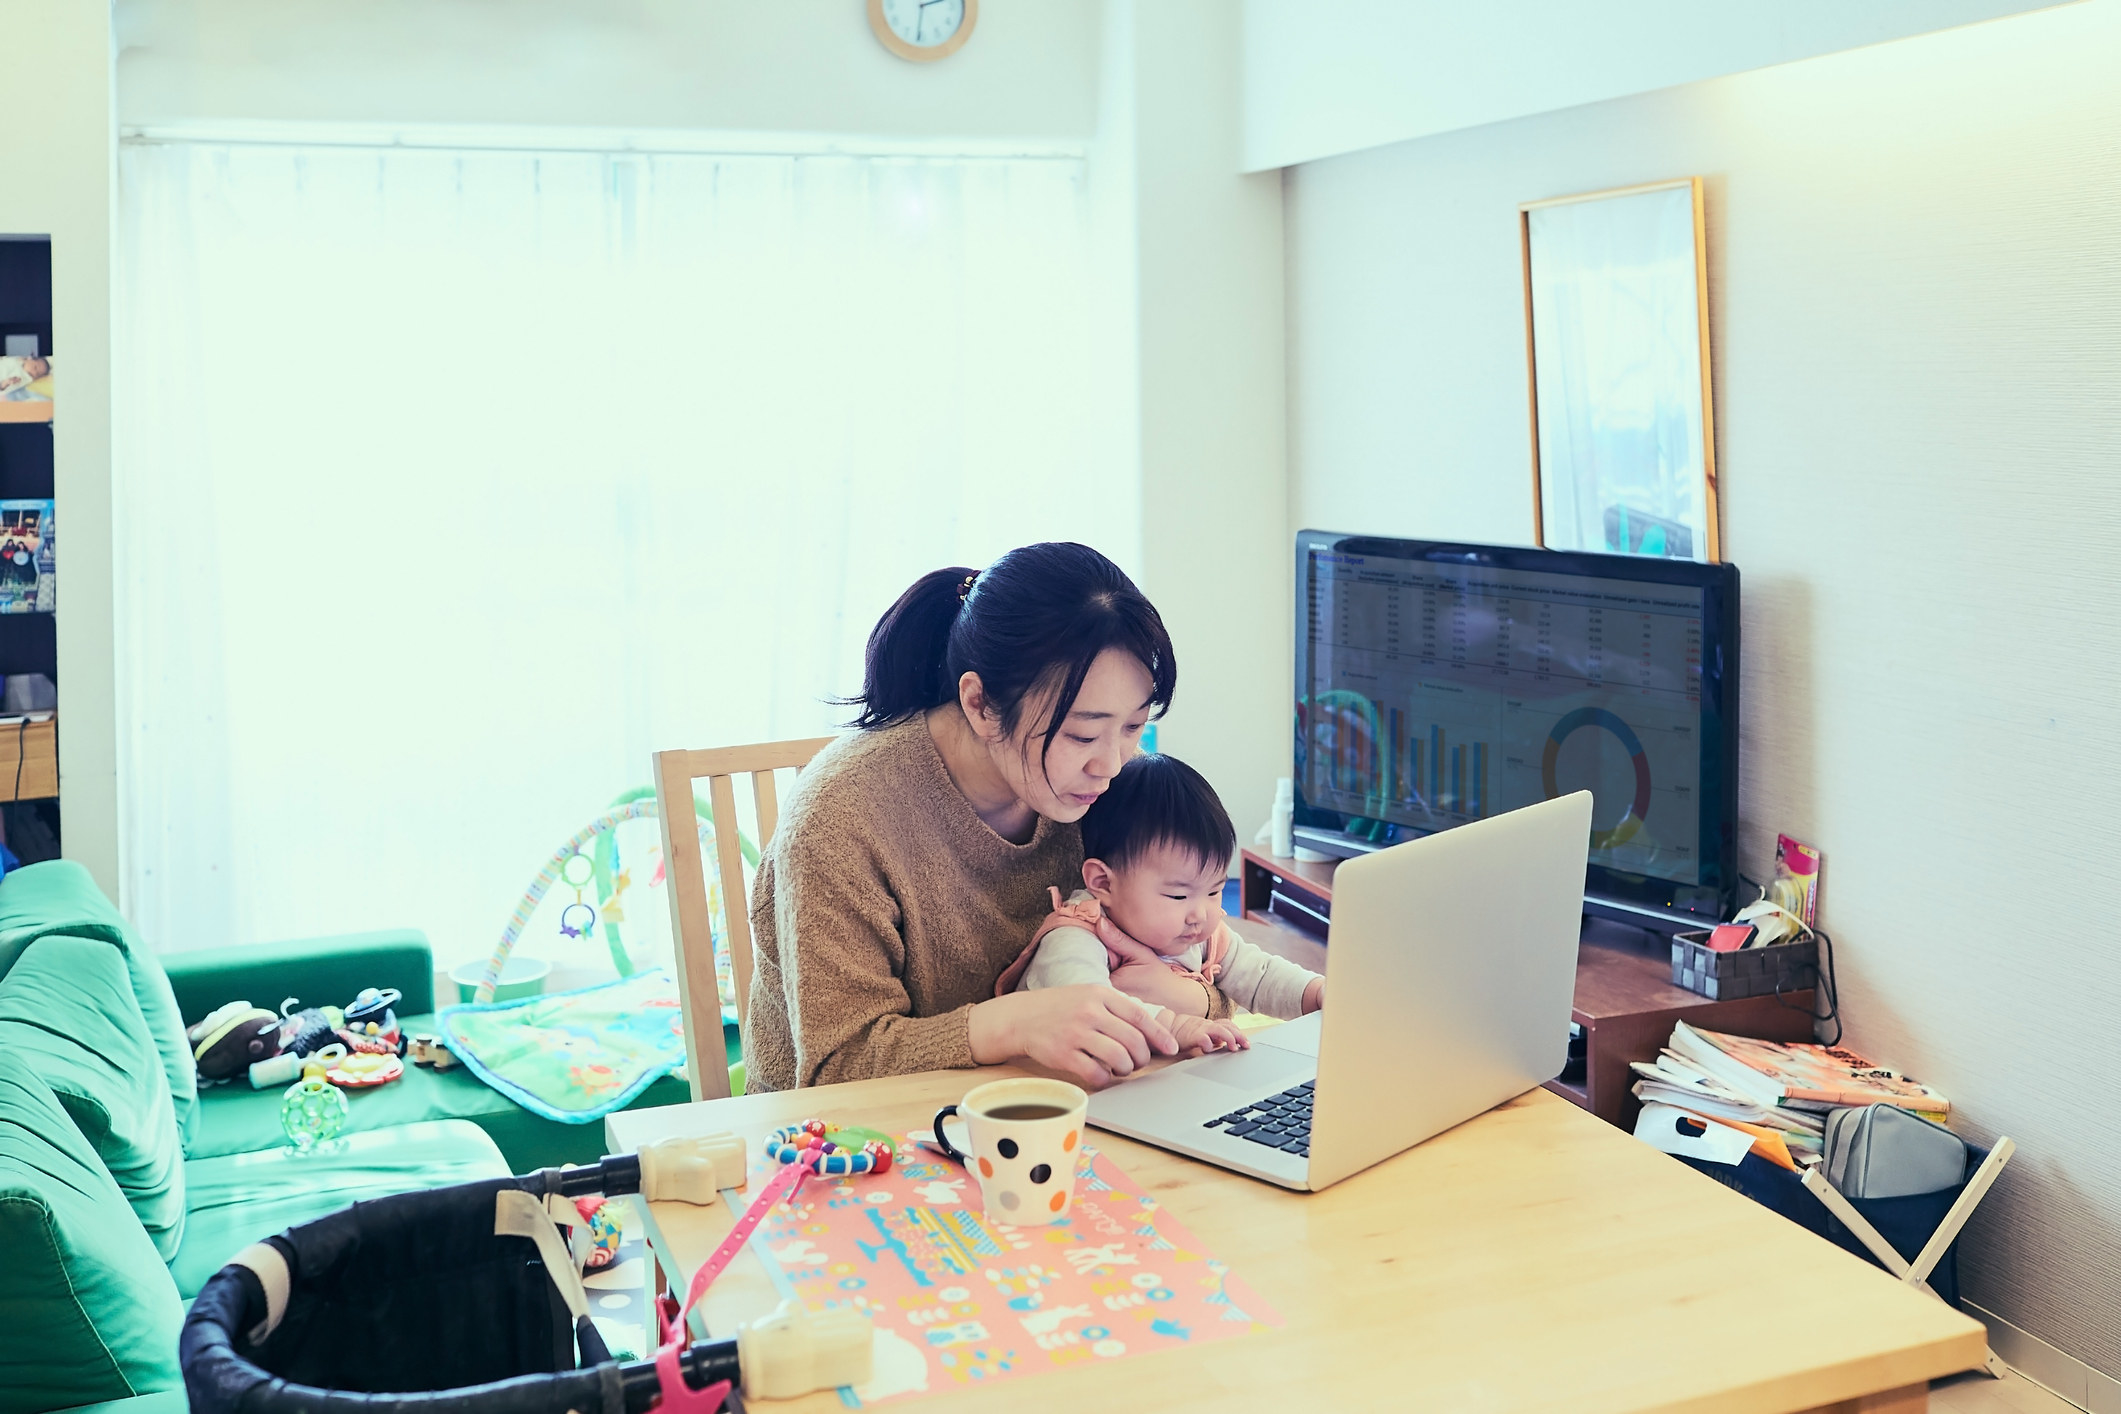 A mom holds her baby as she works on her computer